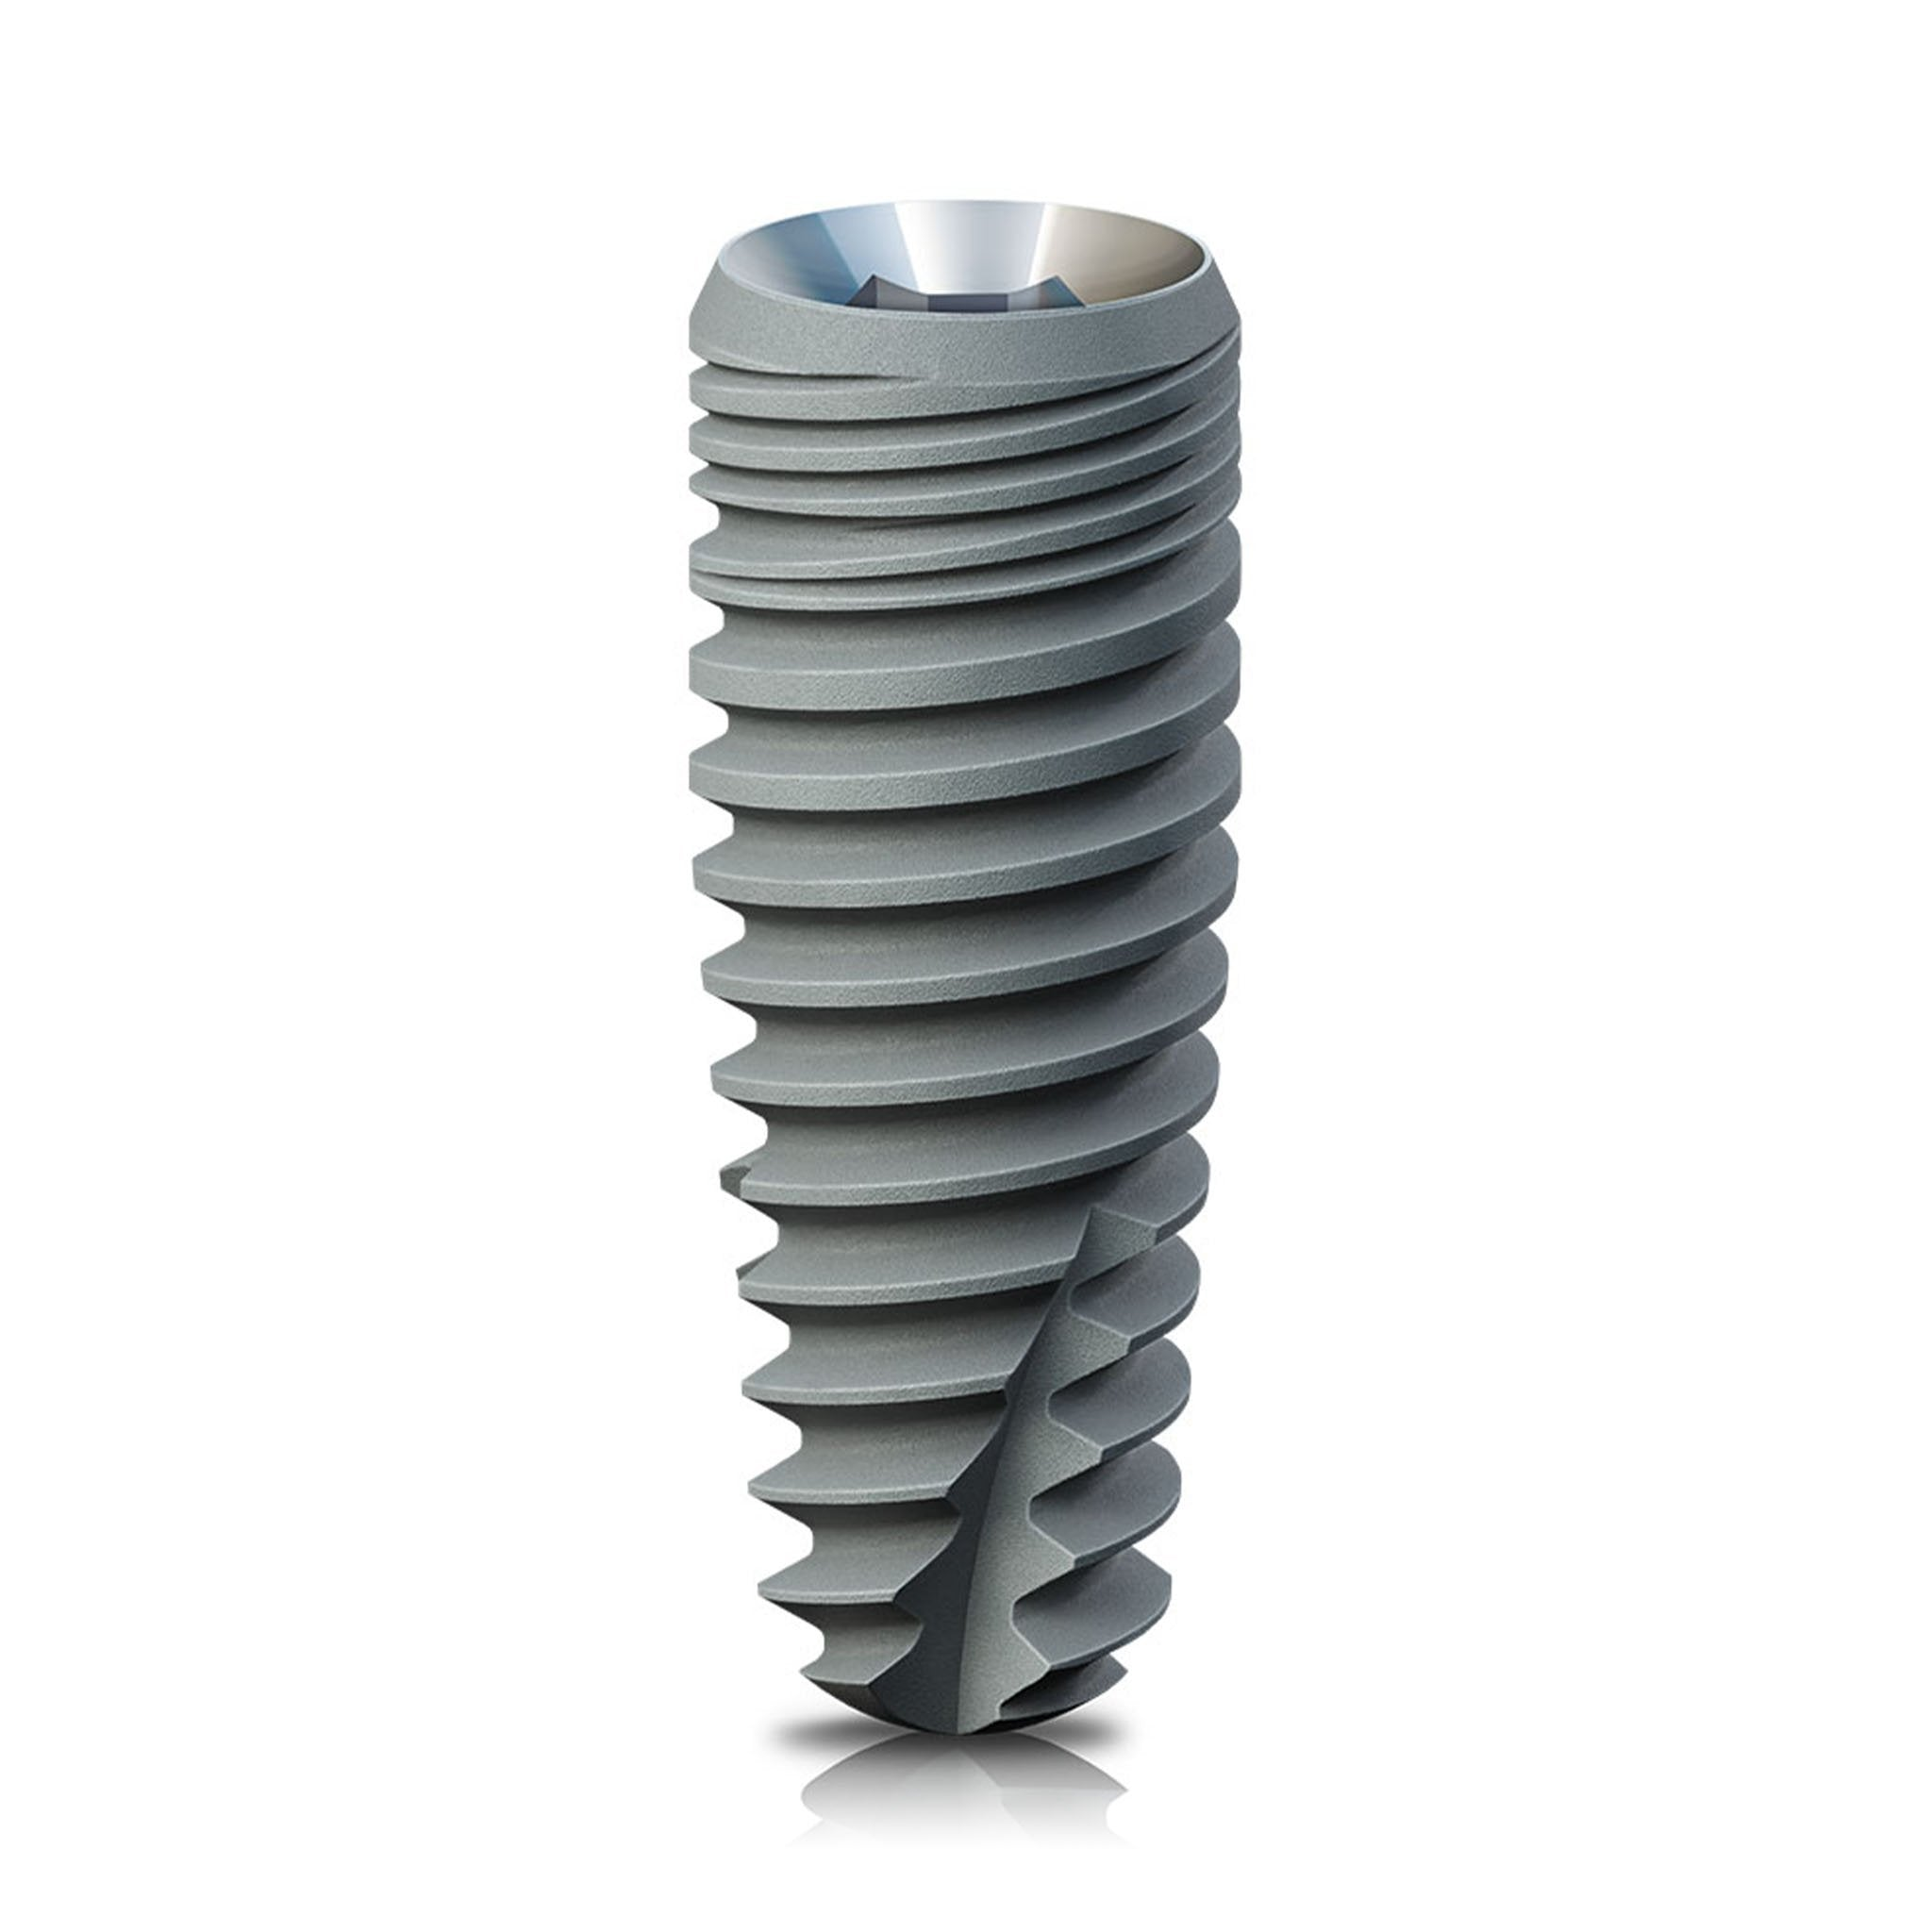 Advanced Implant SP Ø 3.75 x 13mm | K3